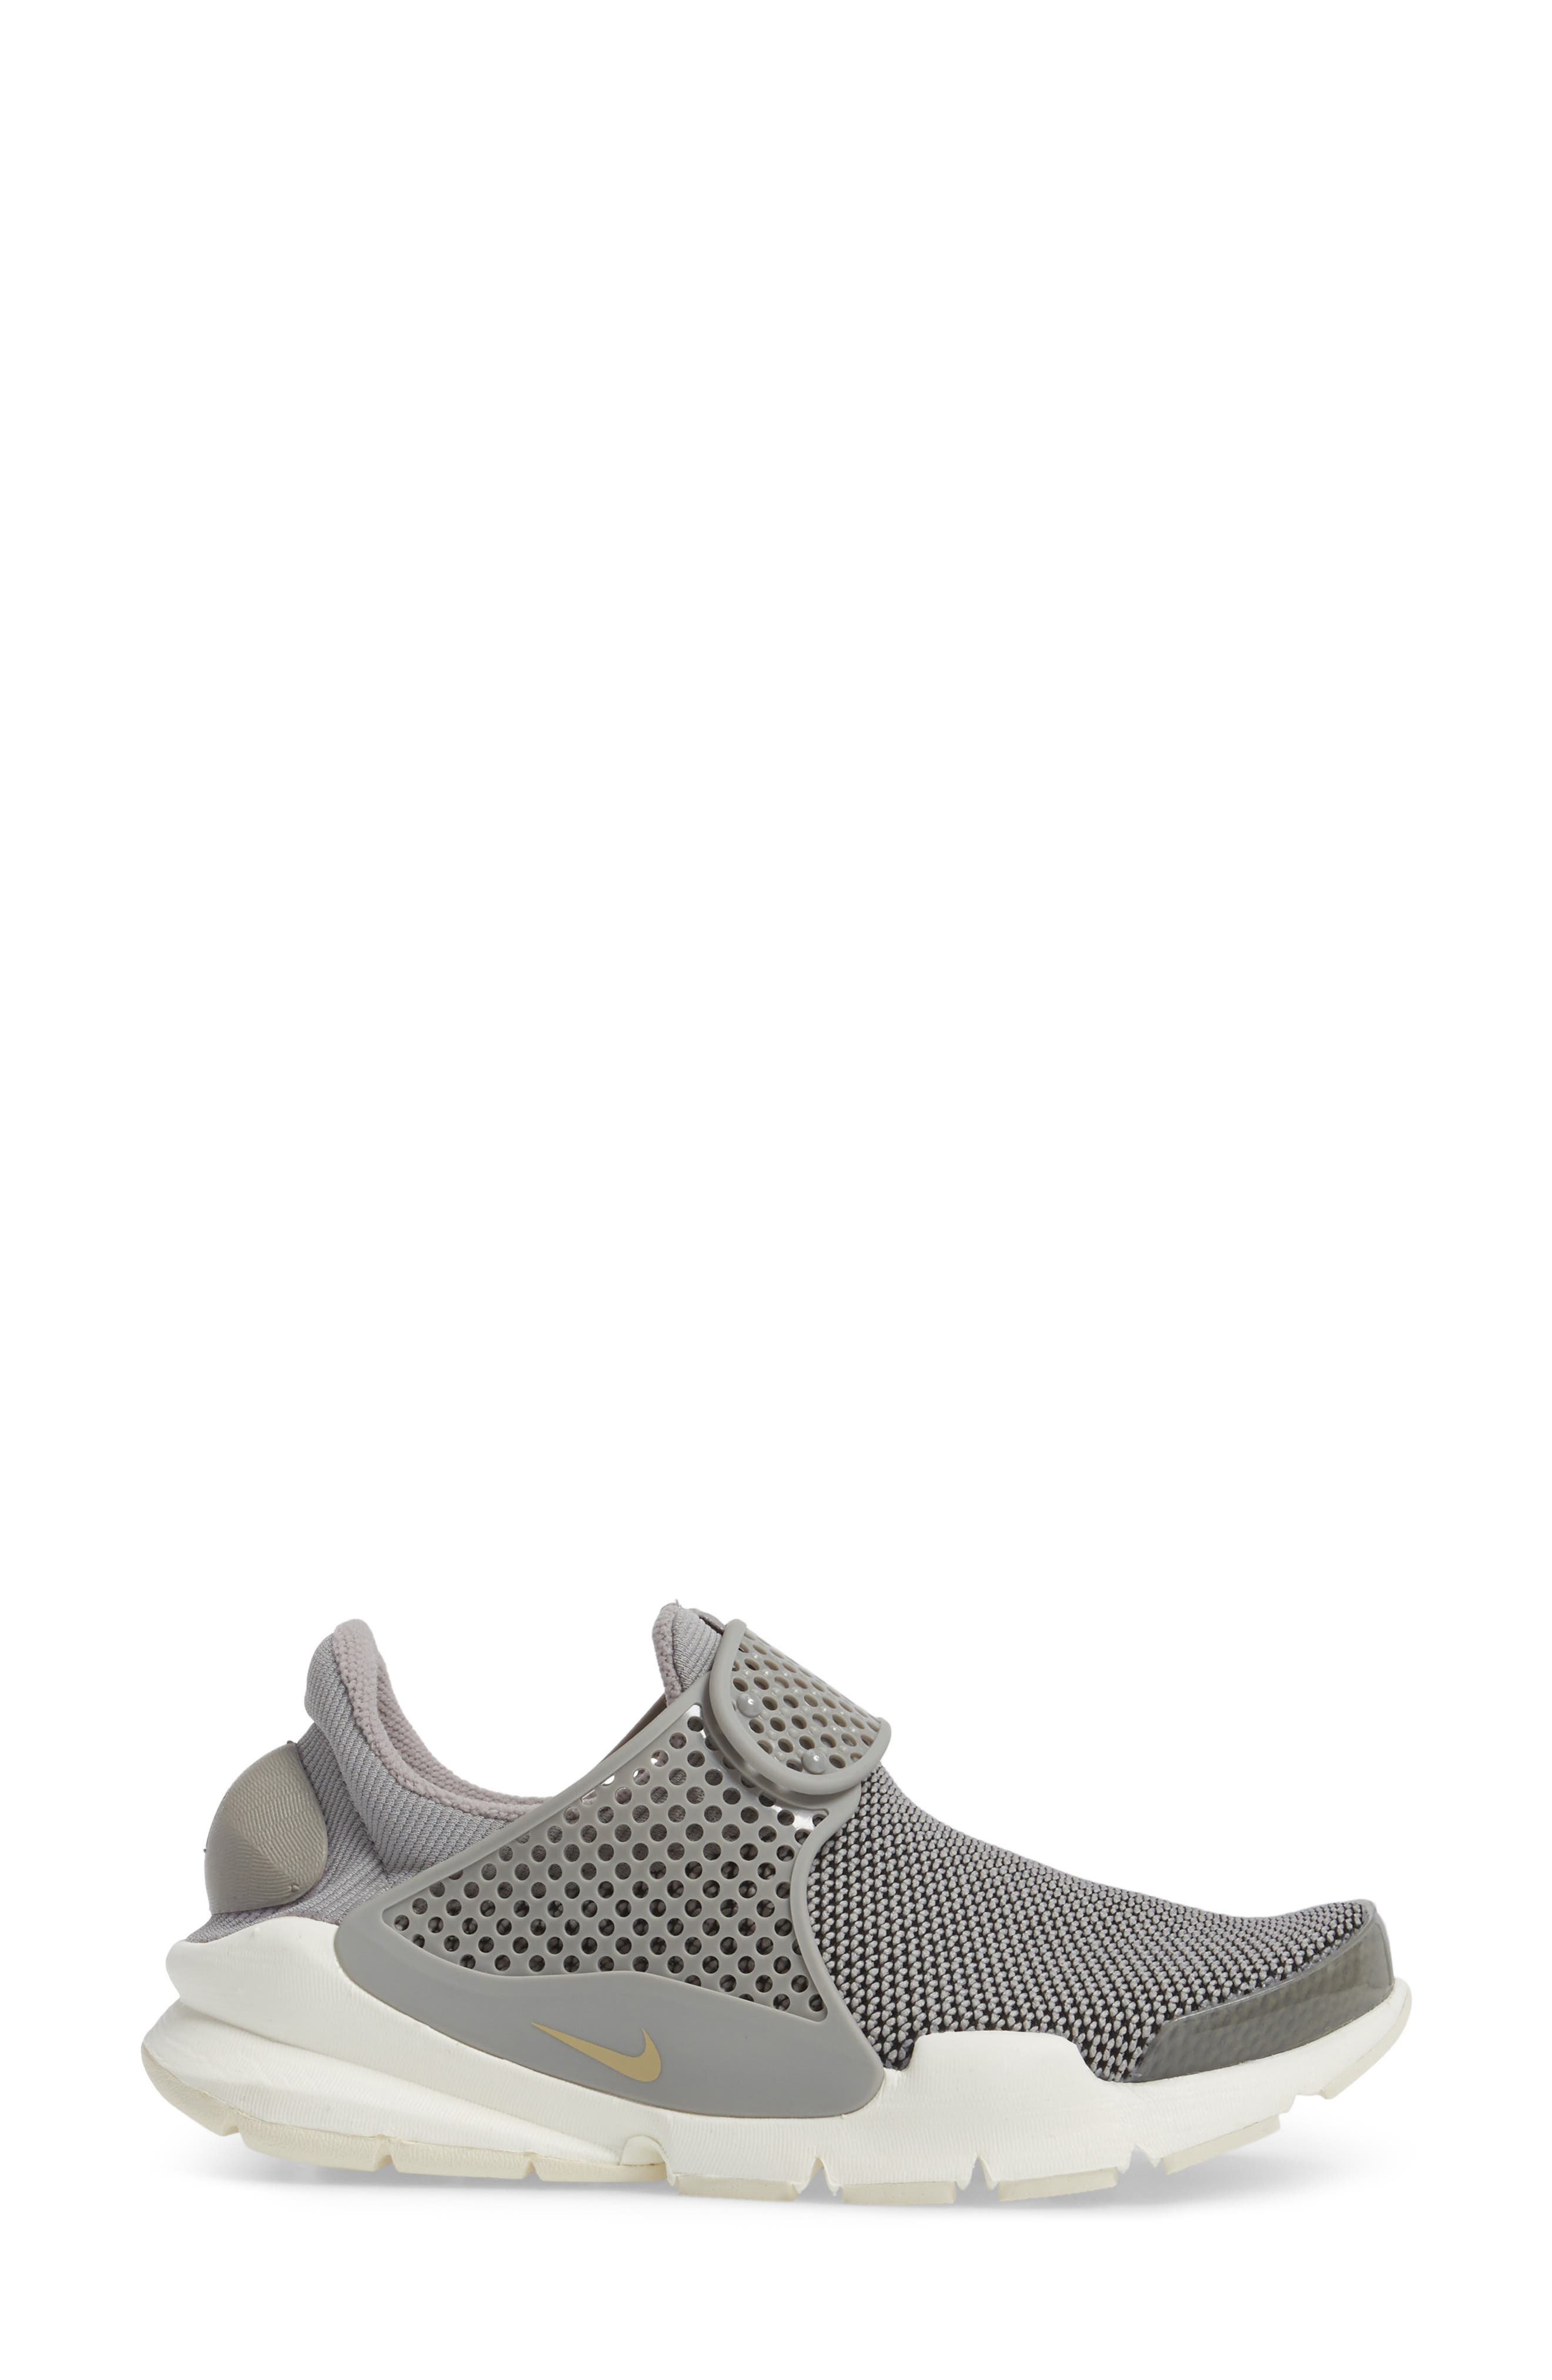 Alternate Image 3  - Nike Sock Dart Sneaker (Women)